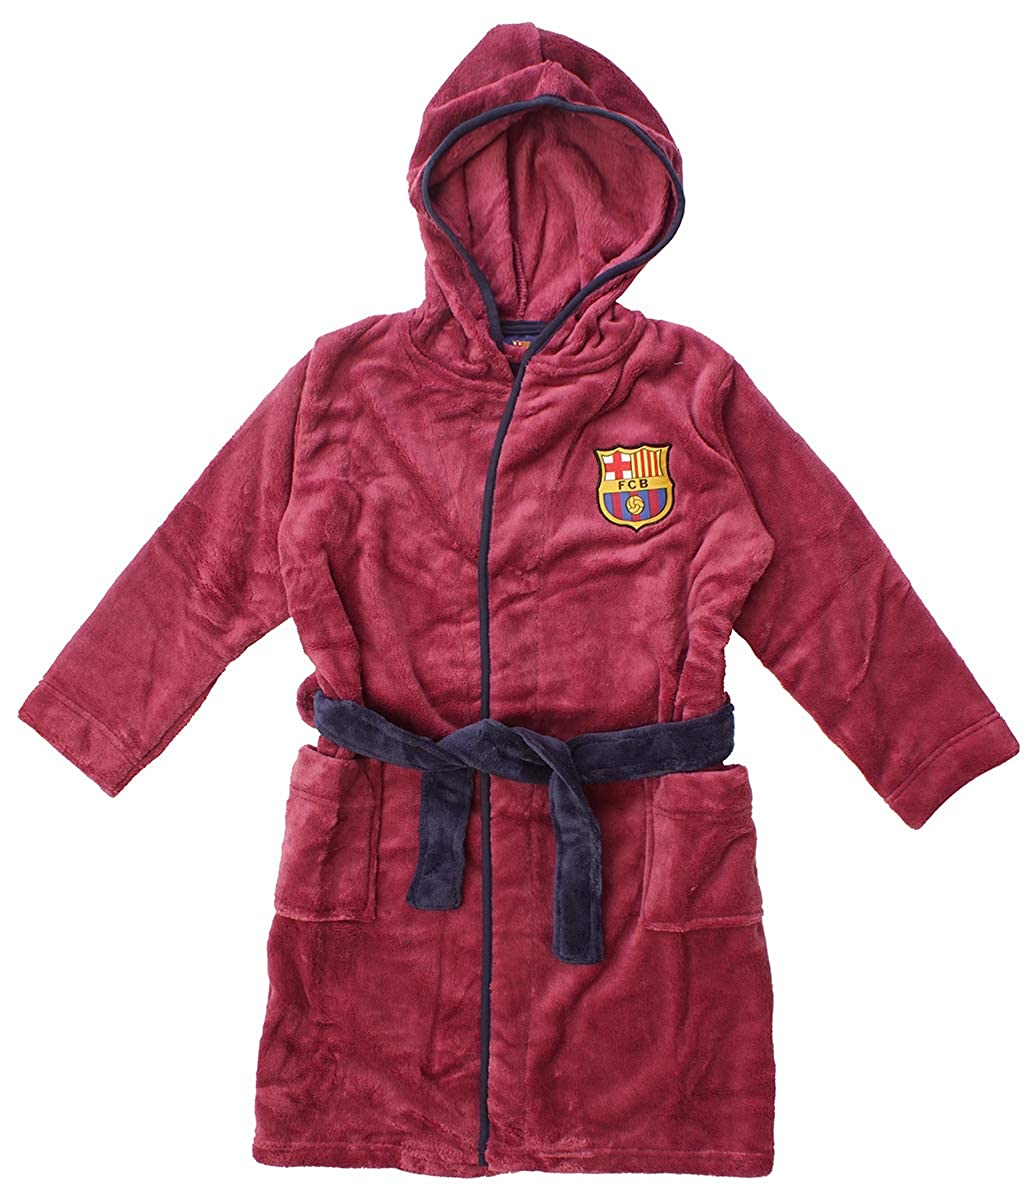 Barcelona FCB Boys Official Hooded Fleece Dressing Gown Bathrobe Sizes from 3 to 12 Years